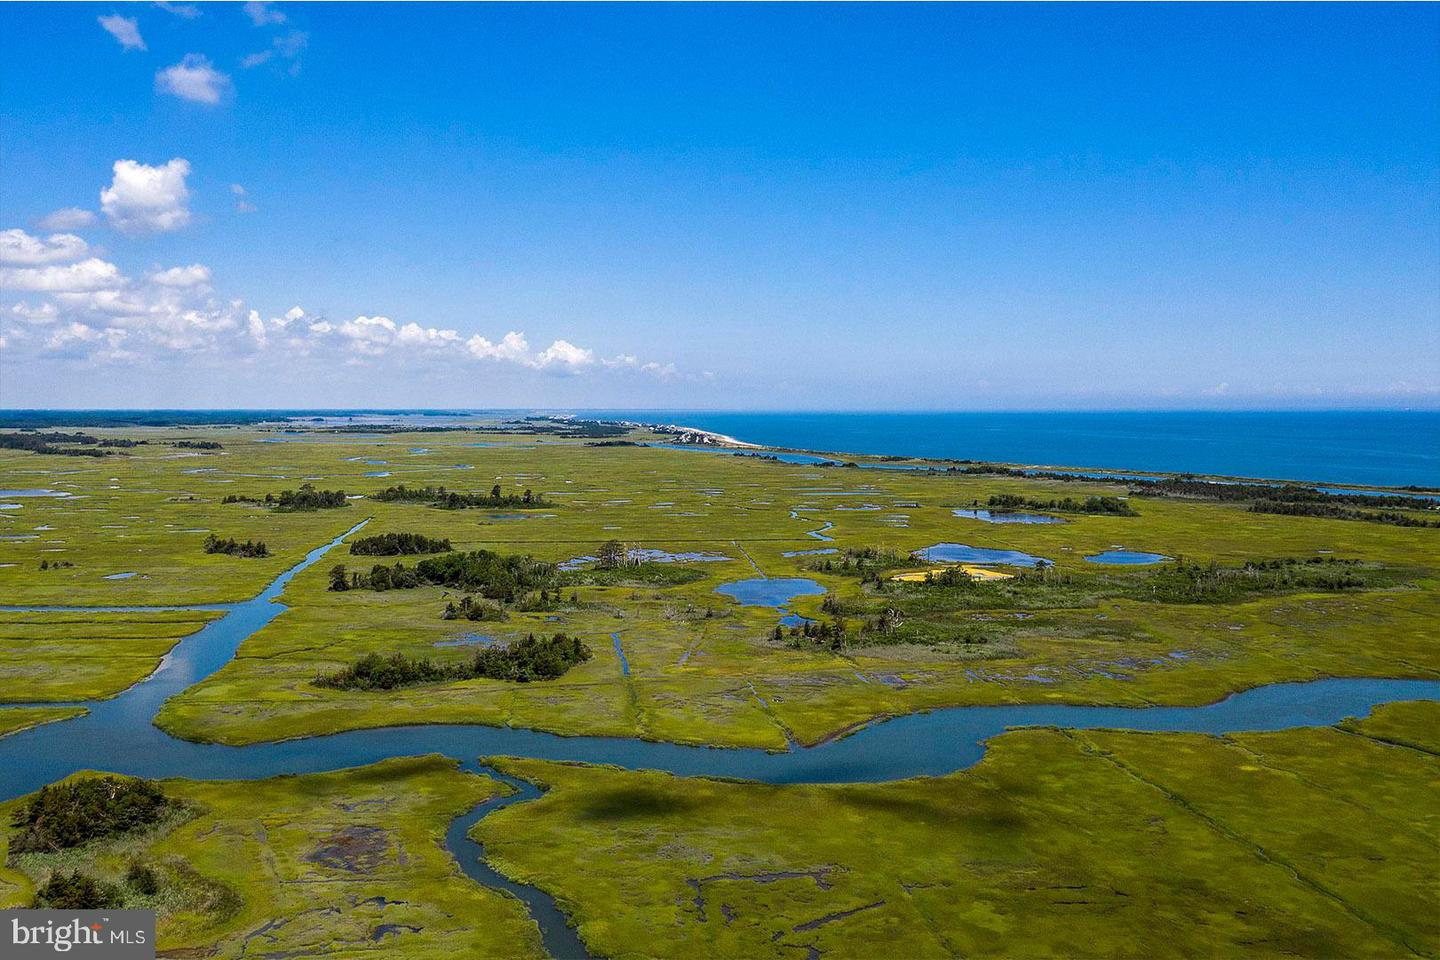 DESU172470-304381943538-2020-11-02-16-15-09 Browse our Lewes, Dewey, and Rehoboth Beach Real Estate Listings - Rehoboth Beach Real Estate - Bryce Lingo and Shaun Tull REALTORS, Rehoboth Beach, Delaware